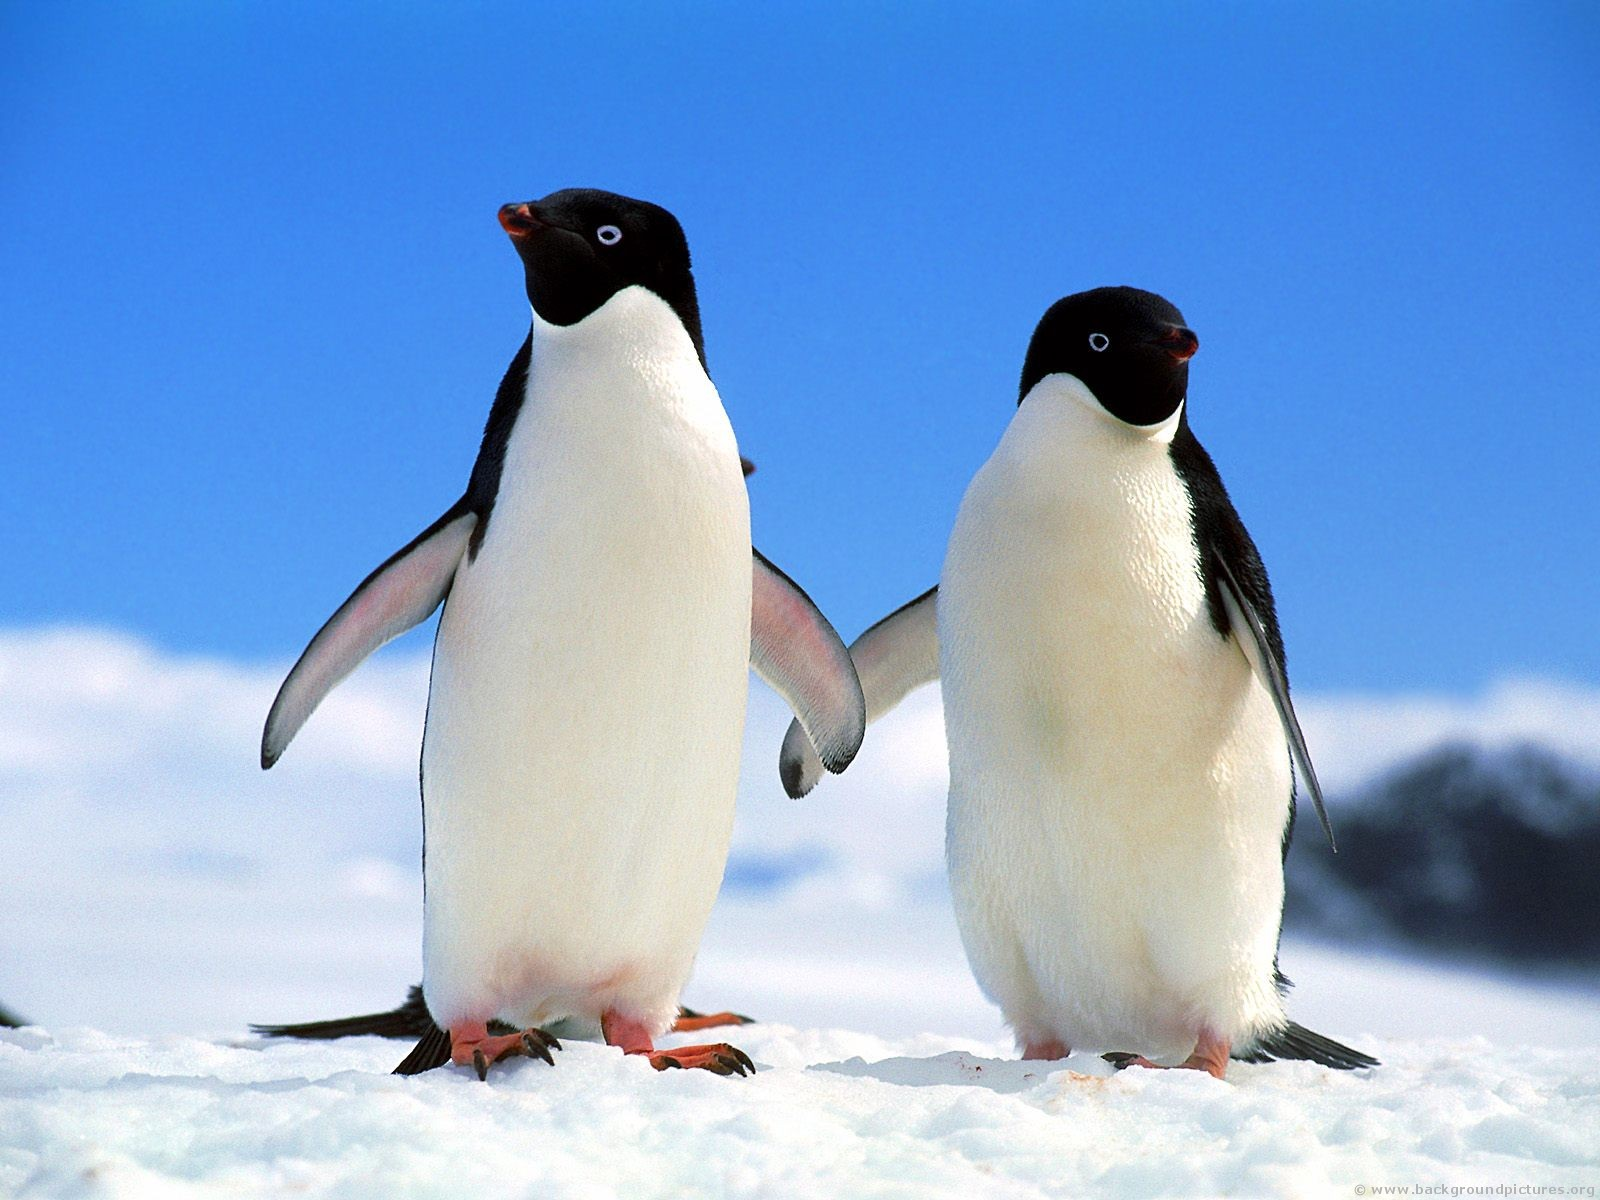 Images of adelie penguins - photo#1